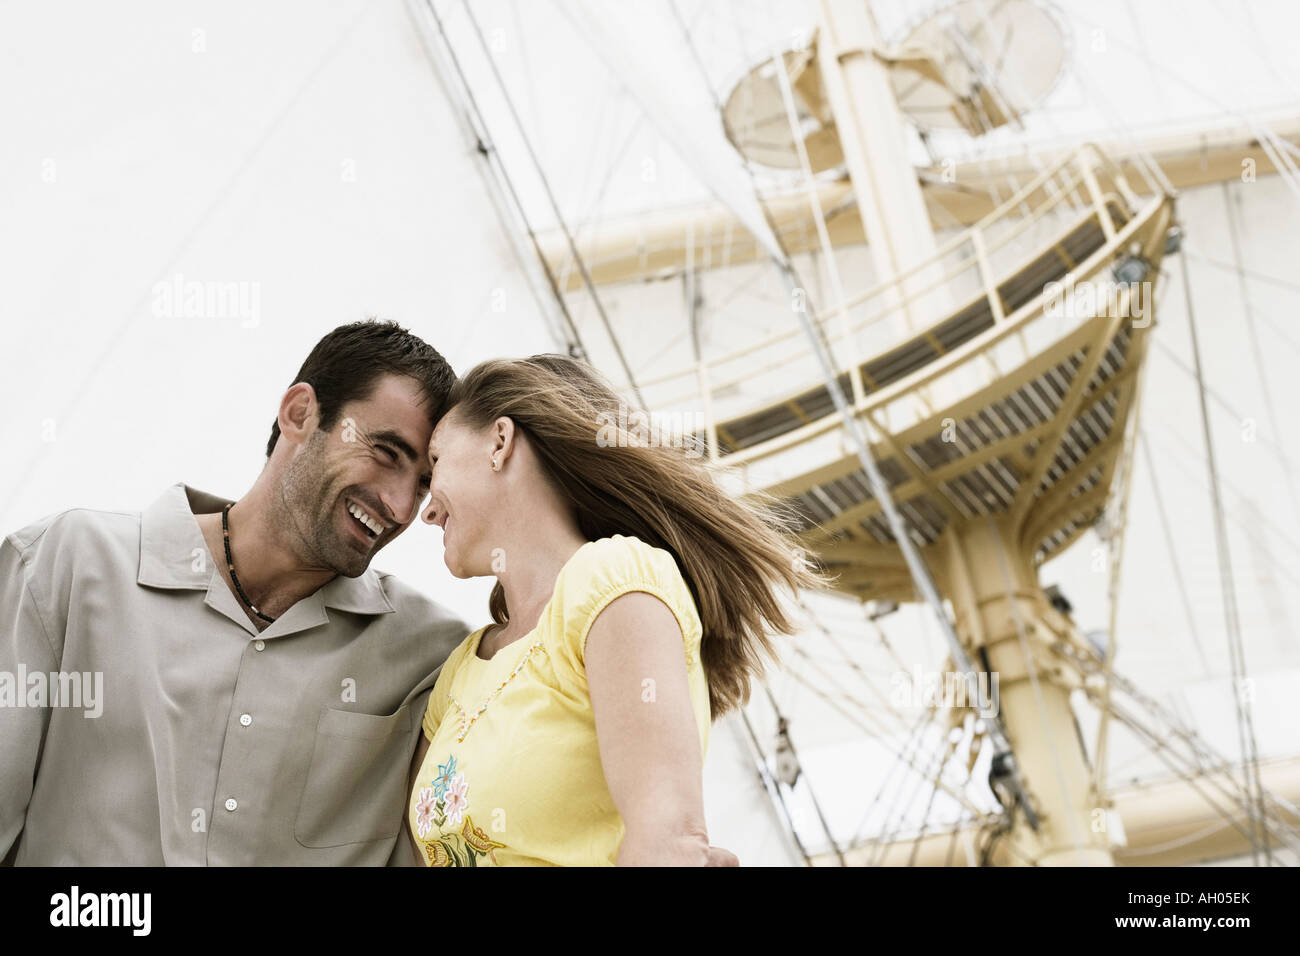 Low angle view of a mid adult couple on a sailing ship and smiling - Stock Image